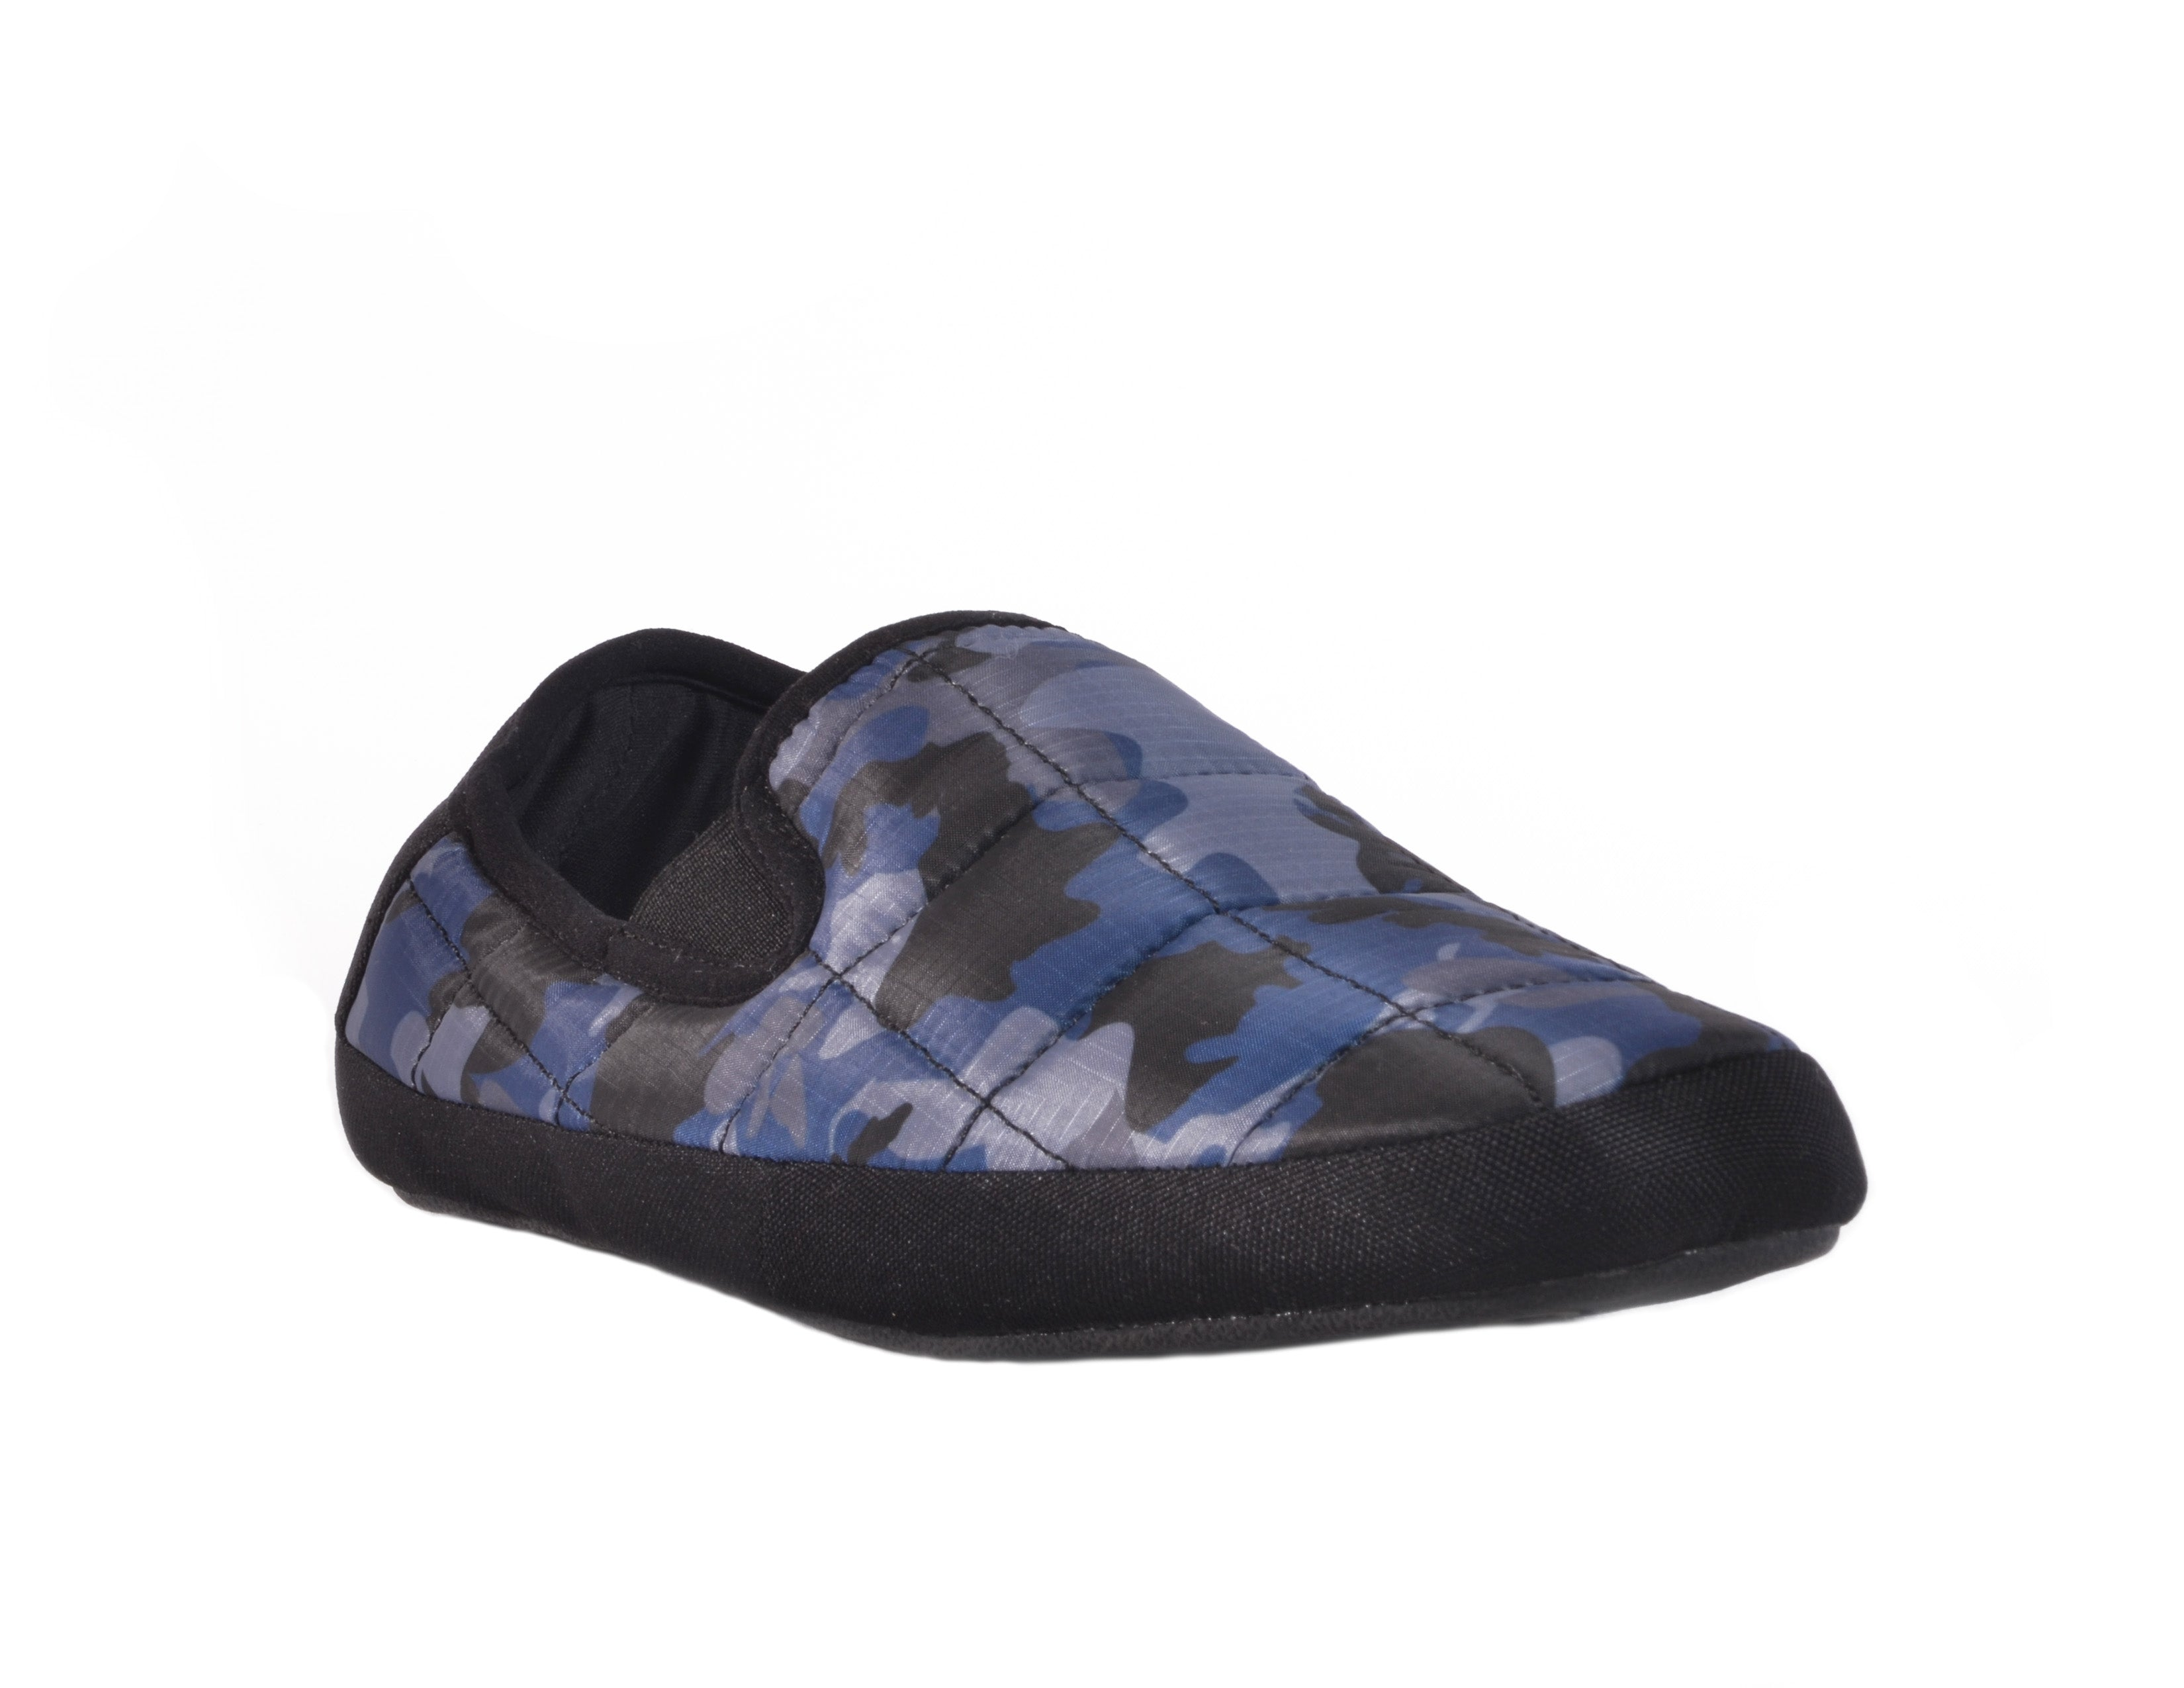 MALMOES MENS CAMO NAVY